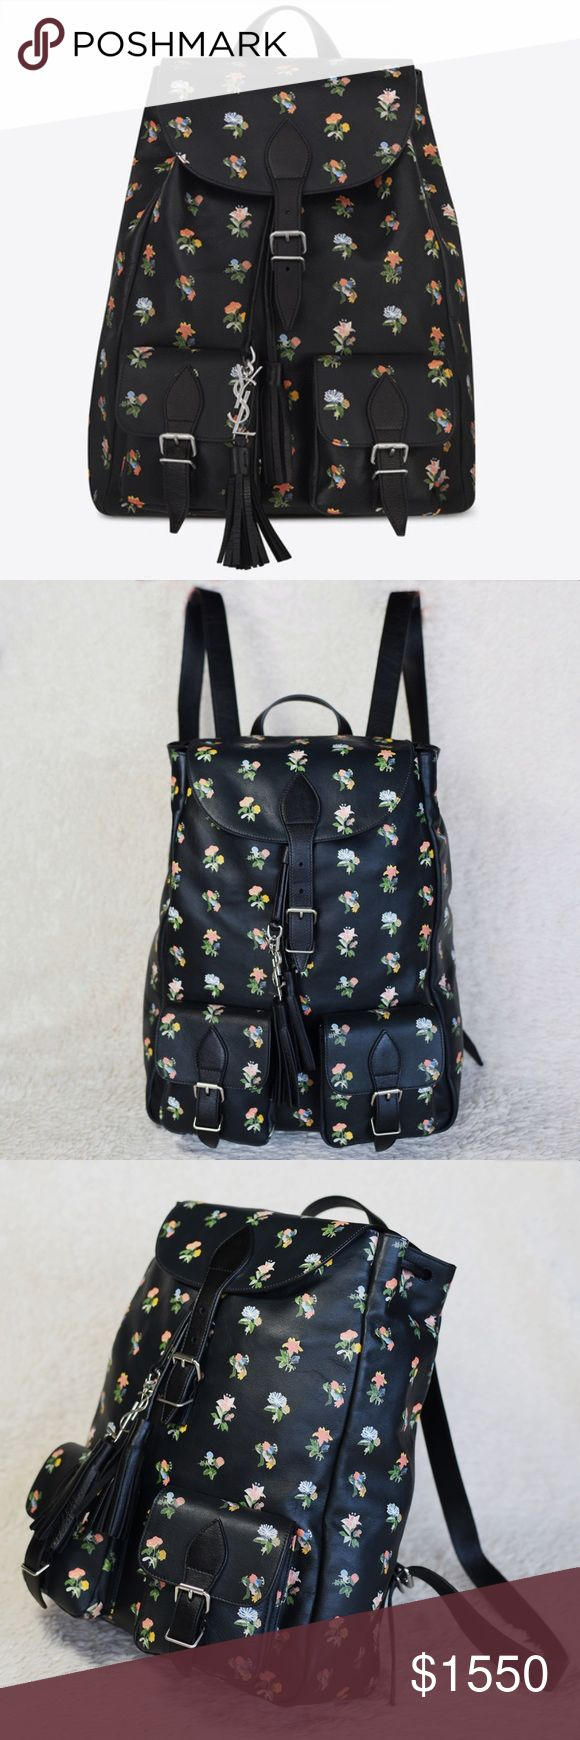 NEW YSL FESTIVAL BACKPACK FLOWER PRINTED LEATHER Authentic. Brand new with tags. Made in Italy. The ID code inside this bag backpack: GNR415195*1215. This backpack will come with dust bag and the care cards. Saint Laurent backpack with 2 exterior cargo pockets and drawstring full with metal interlocking YSL signature gourmette chain and leather tassel. 100% calfskin. Cotton lining. Adjustable buckle closure and cinch top. Oxidized nickel hardware. Adjustable shoulder straps. Interior zip…